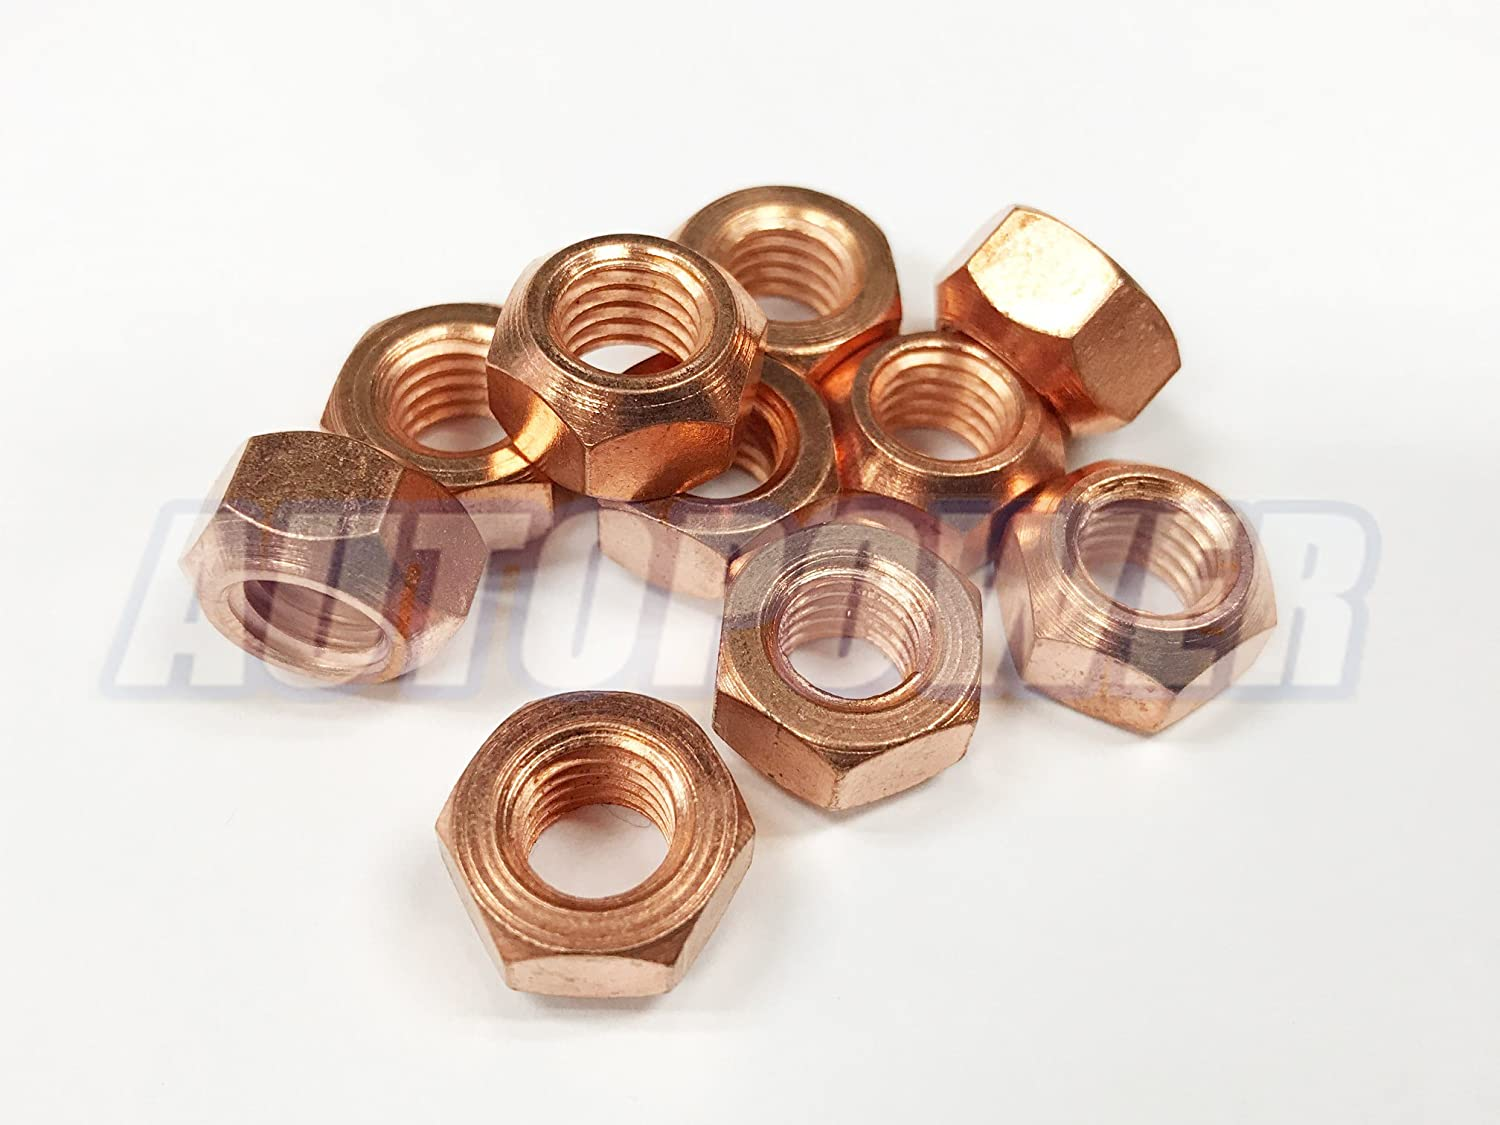 10x M8 Copper Flashed Exhaust Manifold 8mm Nut - High Temperature Nuts AutoPower